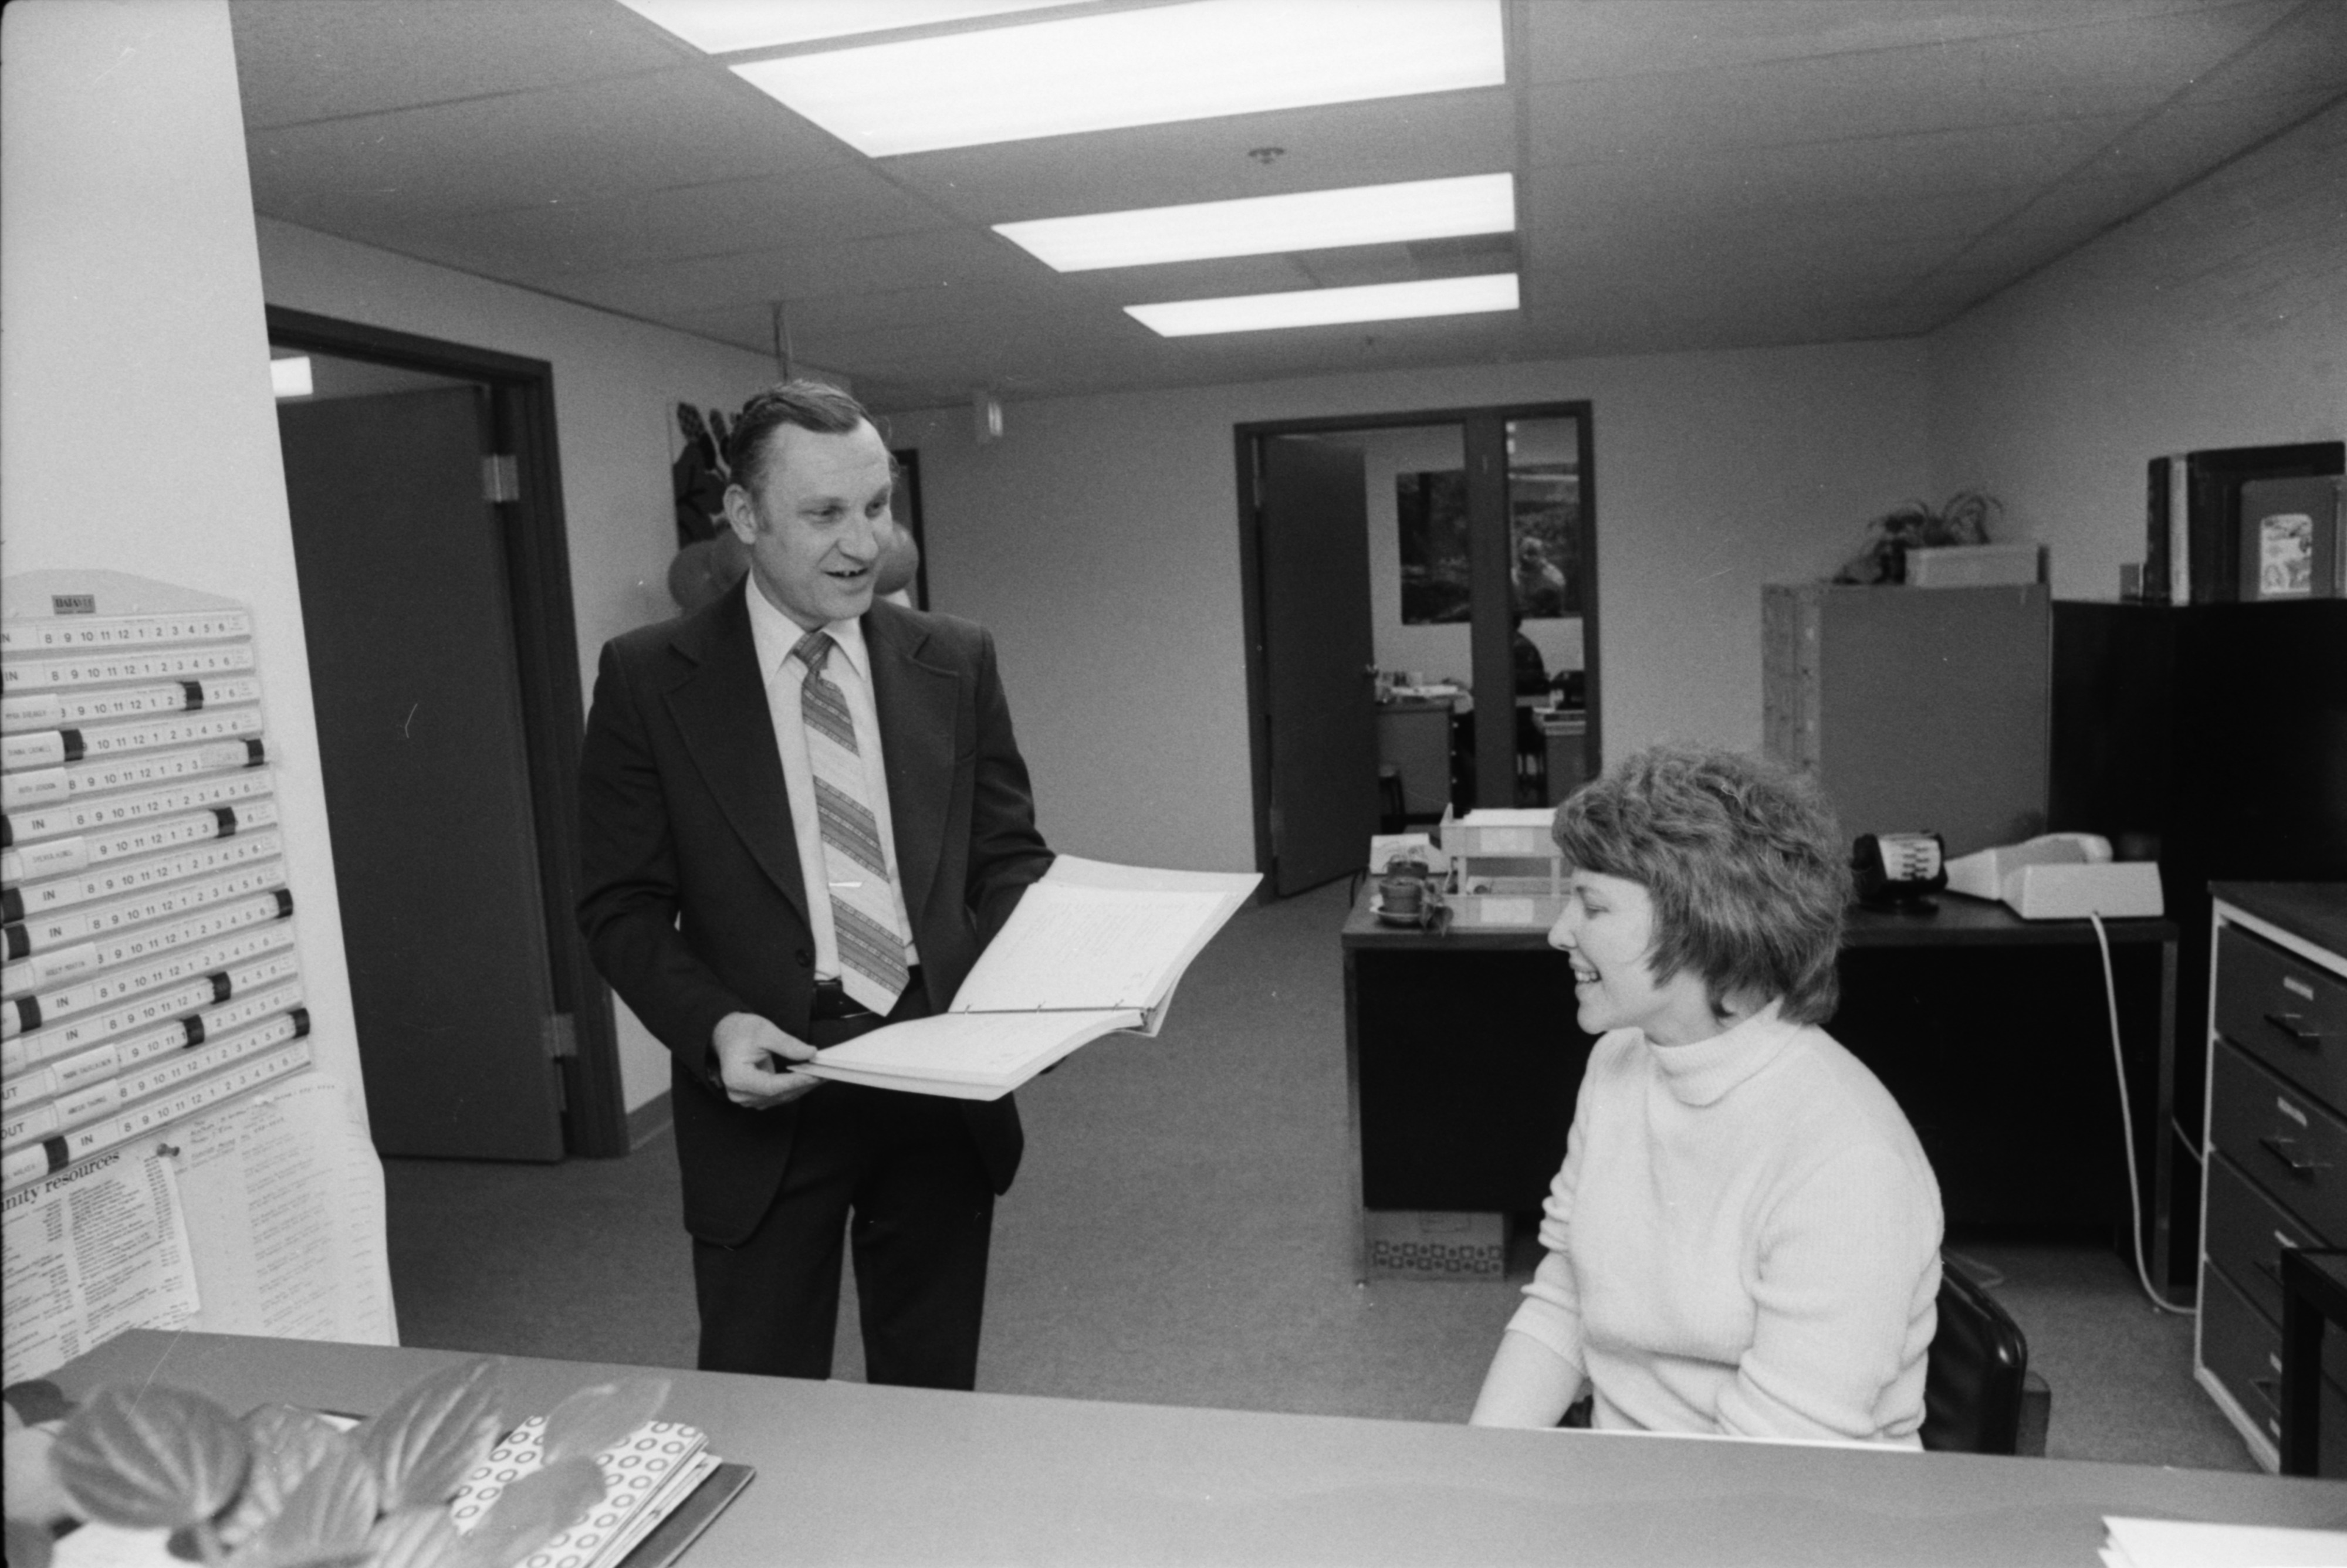 Barry Kistner and Mary E. Baird Discuss New Headquarters for Washtenaw Council on Alcoholism, March 1980 image